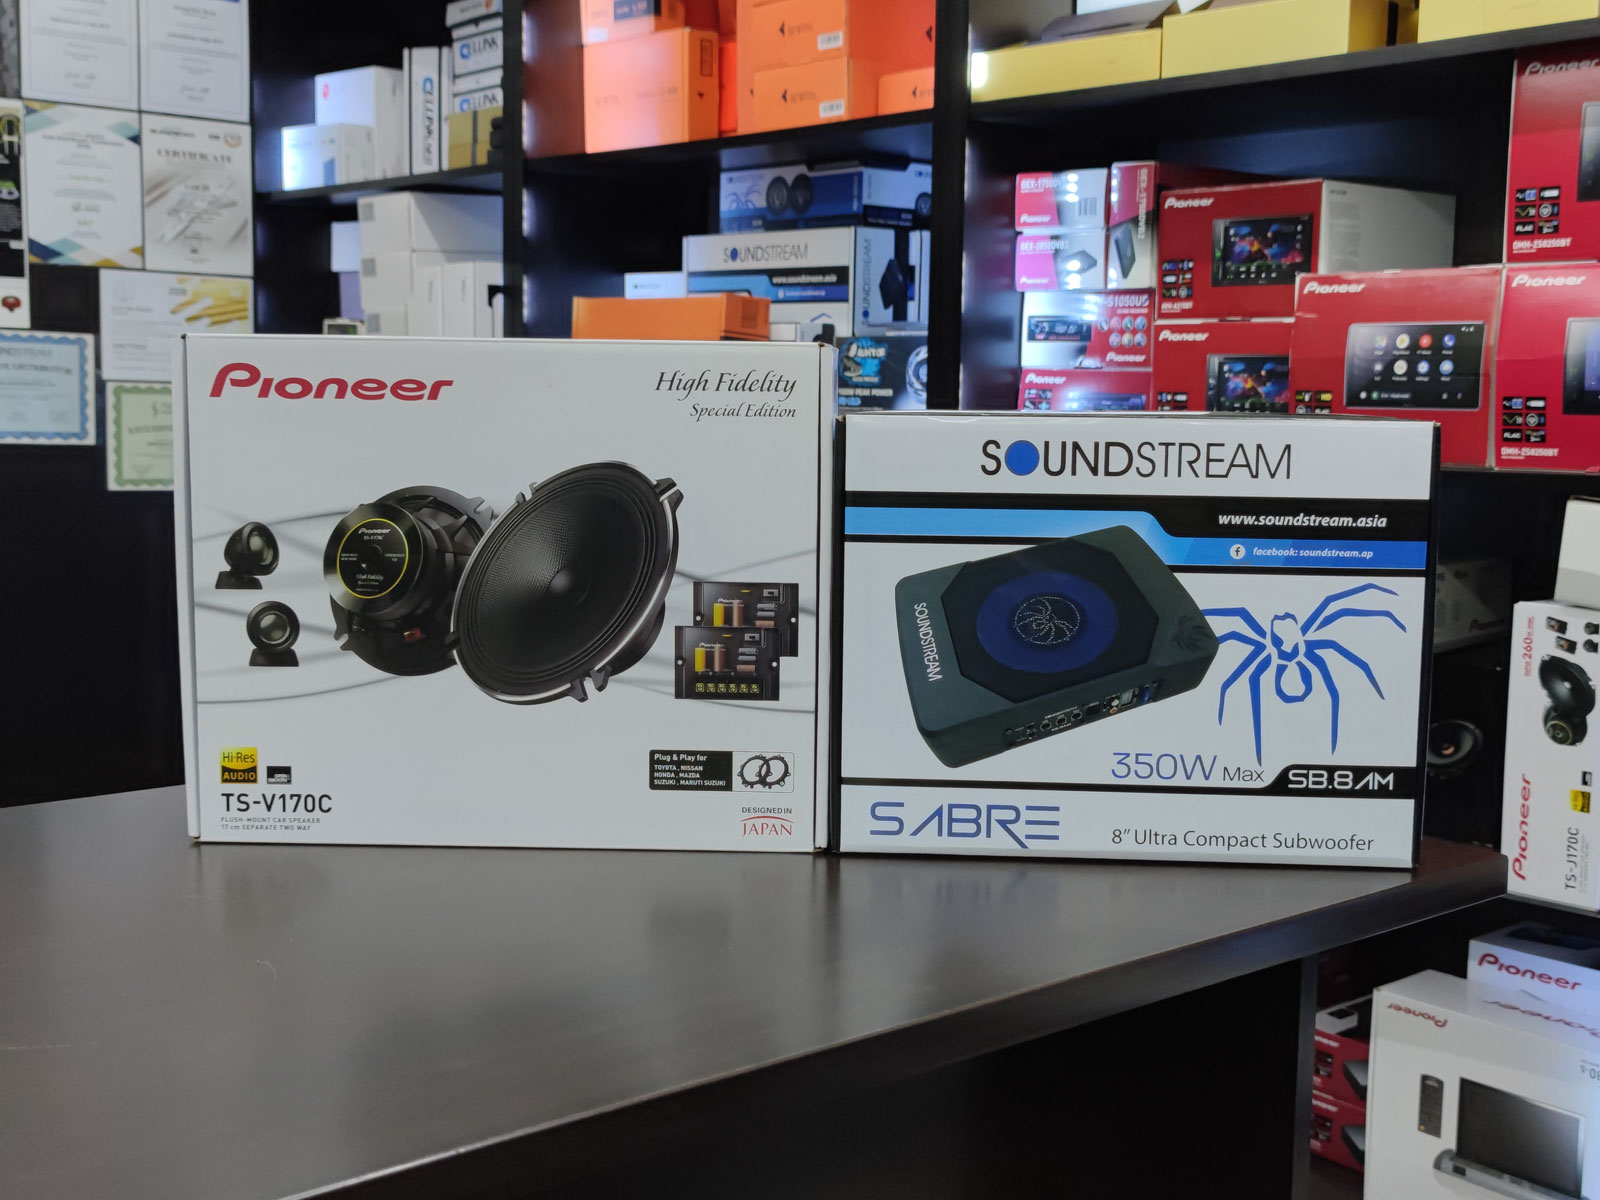 Pioneer TS-V170C Component Speakers (With Soundstream SB.8AM 8″ Active Subwoofer)